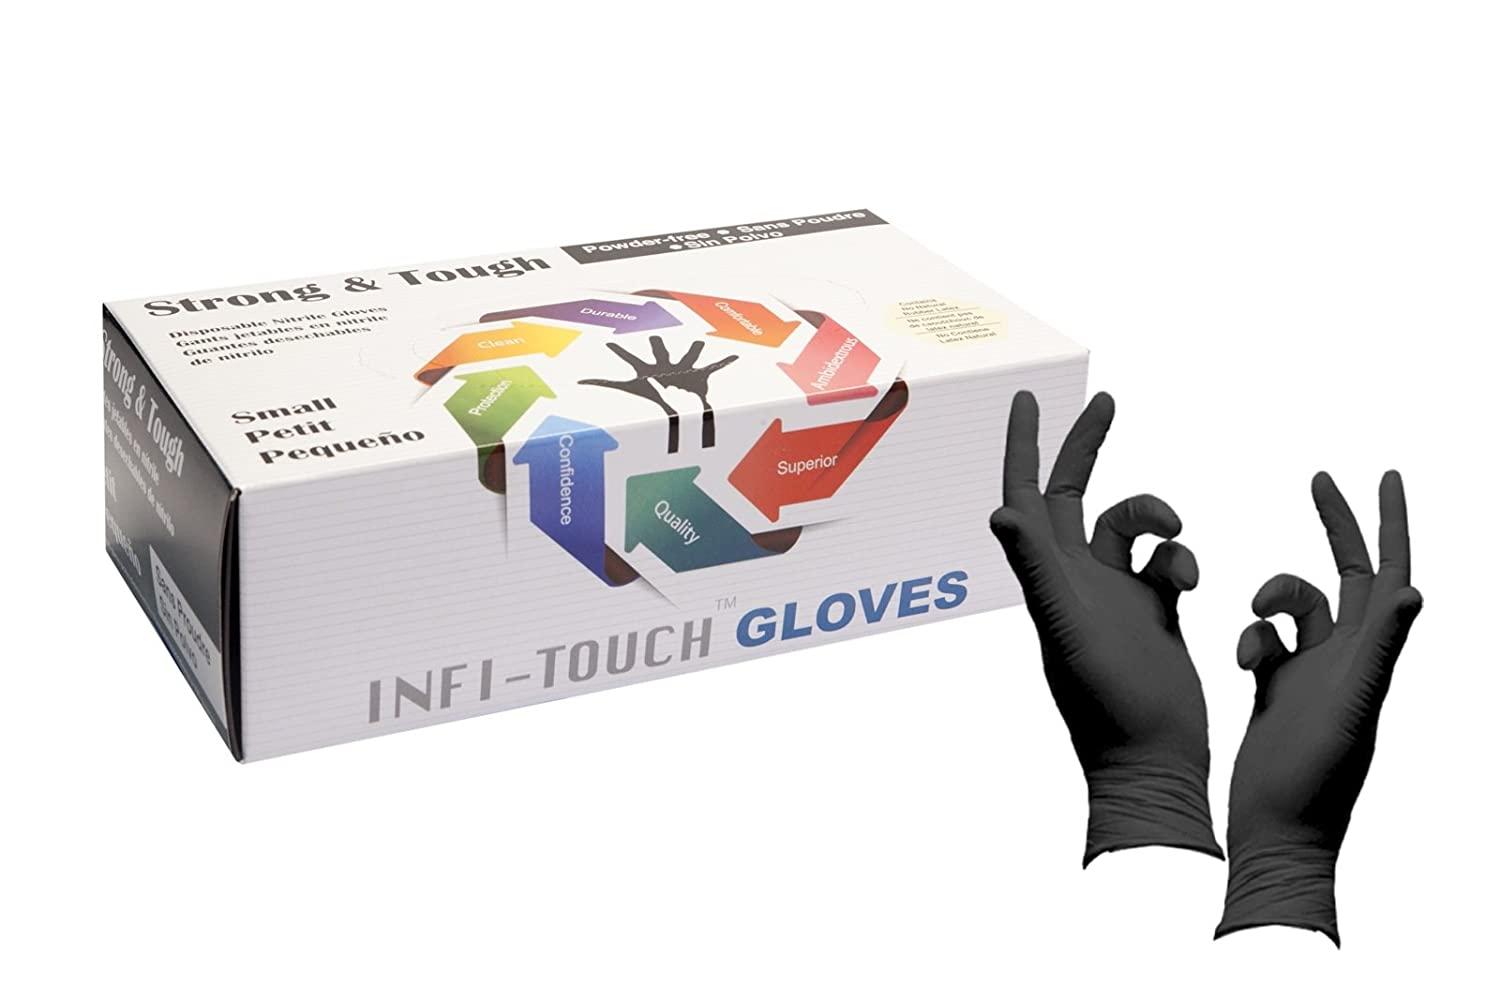 Infi-Touch Heavy Duty Nitrile Gloves, Strong & Tough, High Chemical Resistant, Disposable Gloves, Powder Free, Non Sterile, Ambidextrous, Finger Tip Textured, Dispenser Pack of 100, Size Small